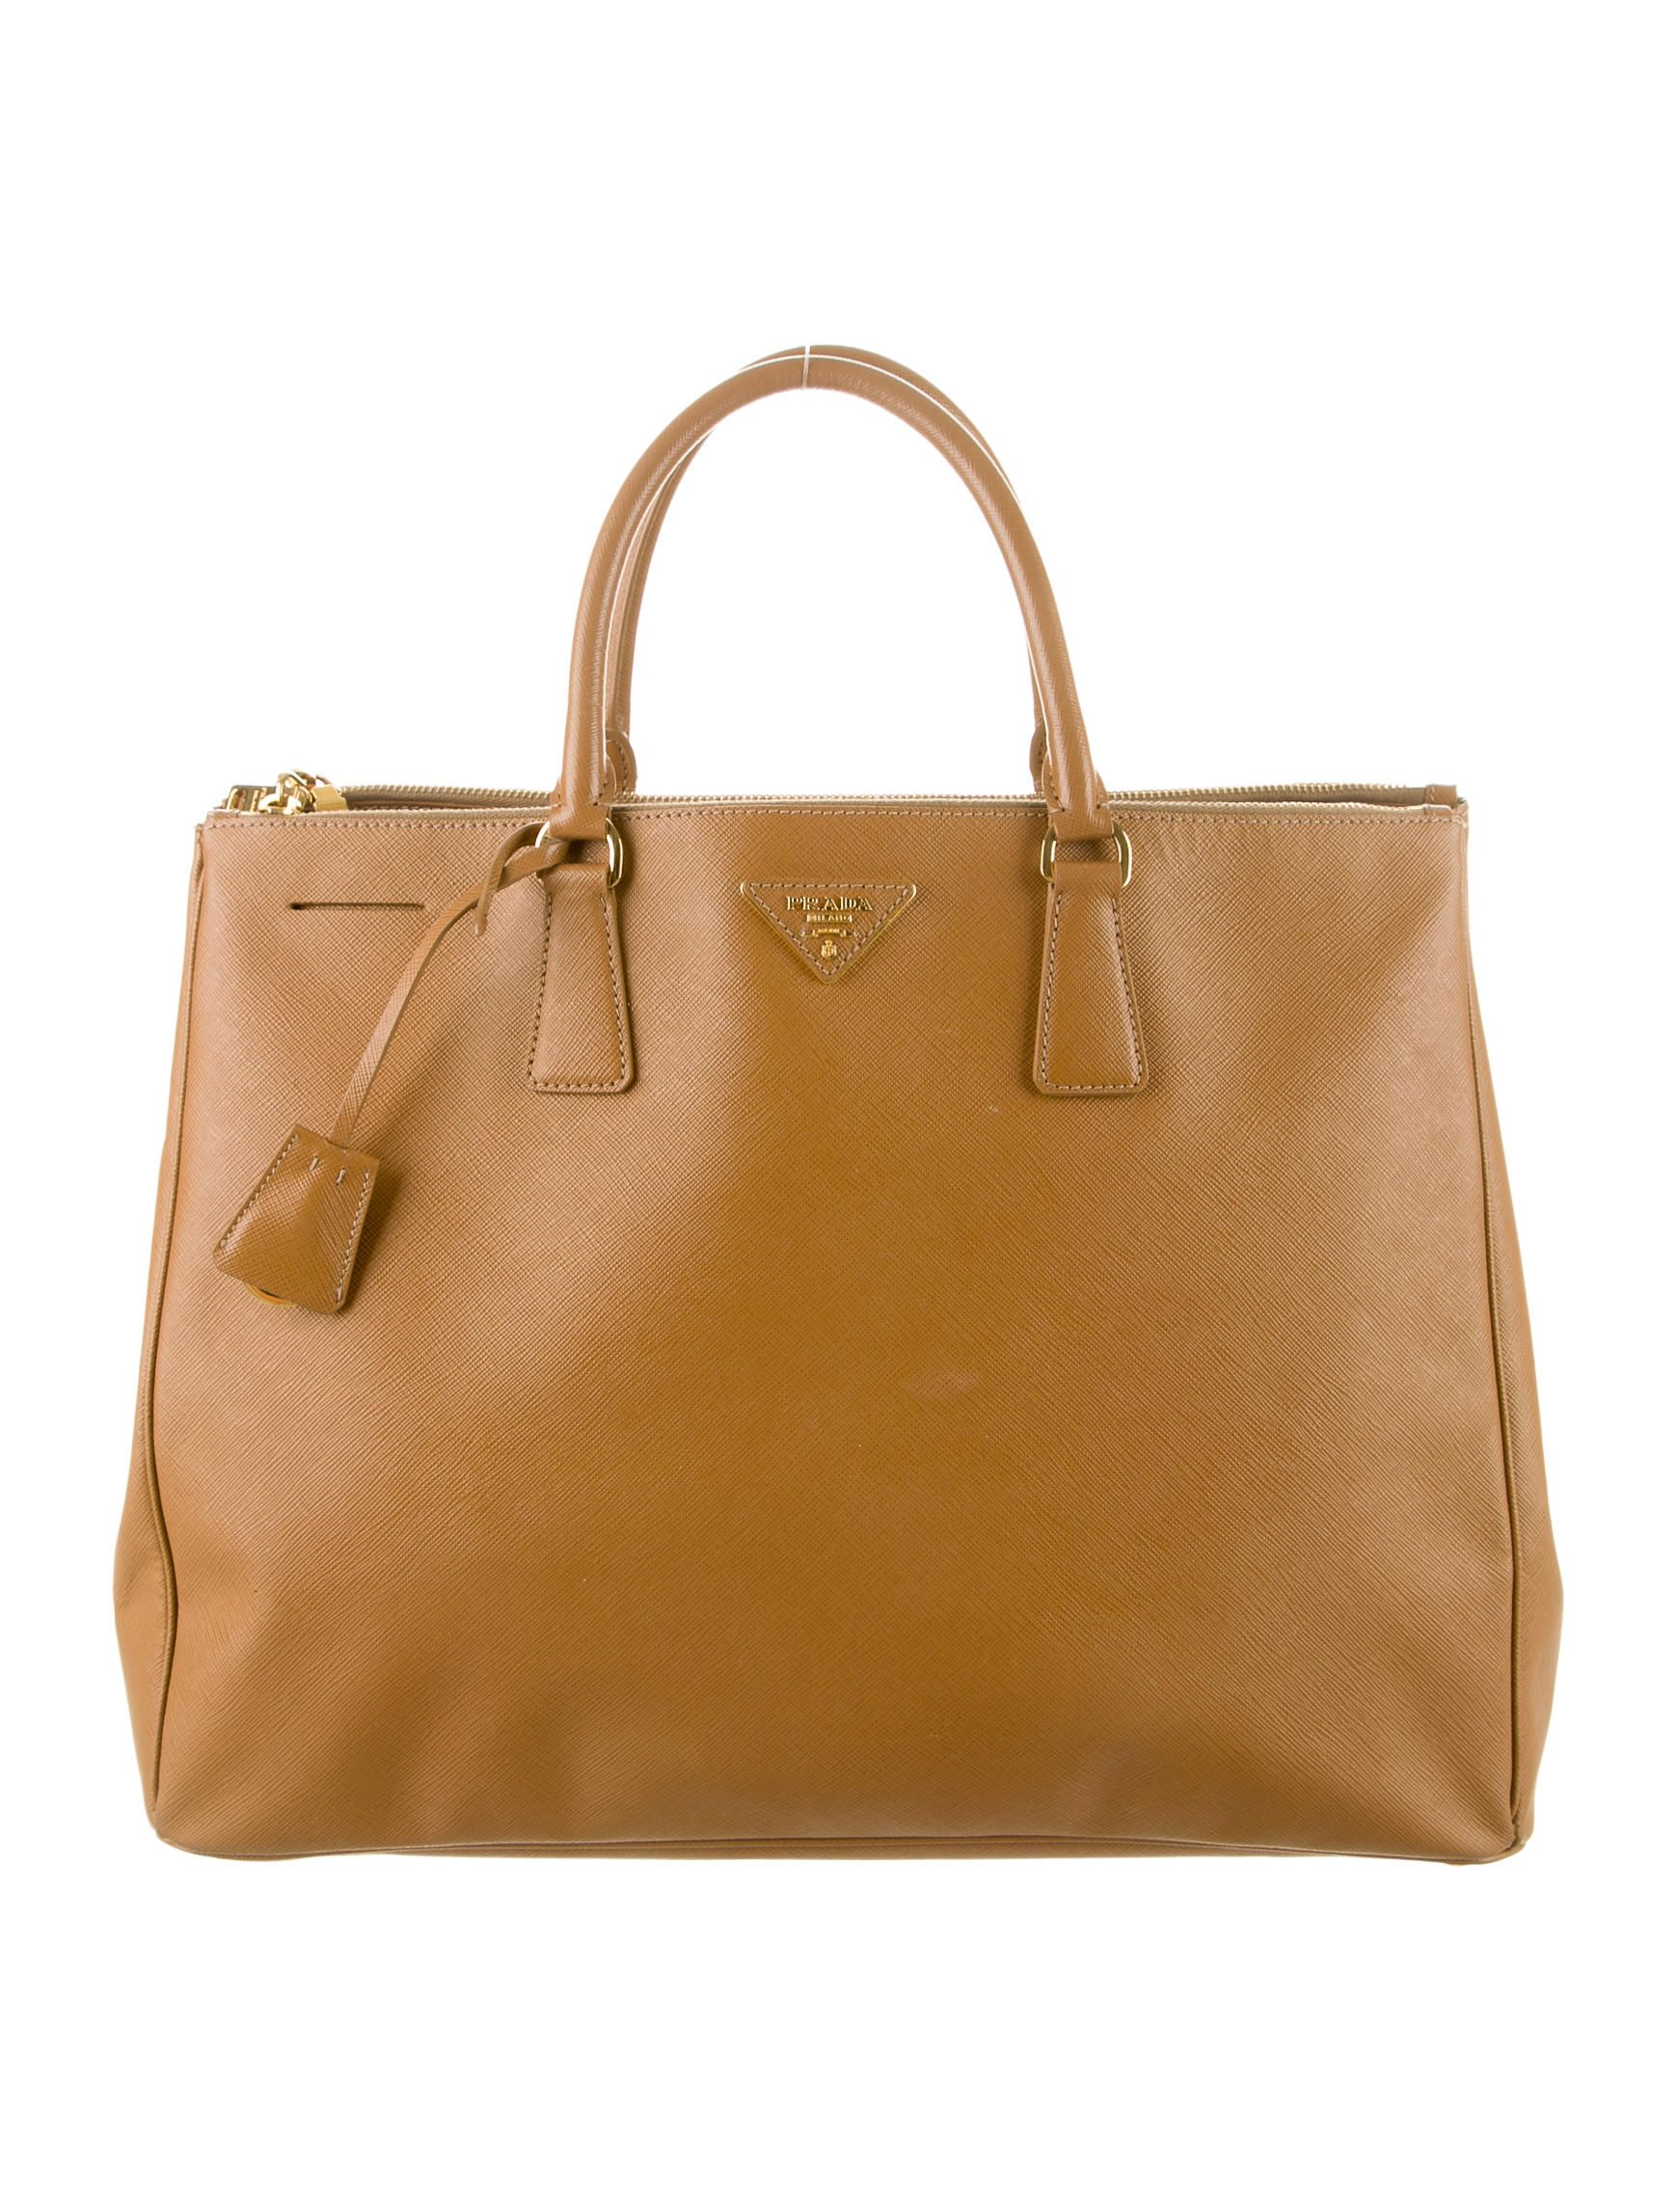 651aa97443e4 Camel leather Prada Saffiano Lux Large Double Zip tote with gold-tone  hardware, dual